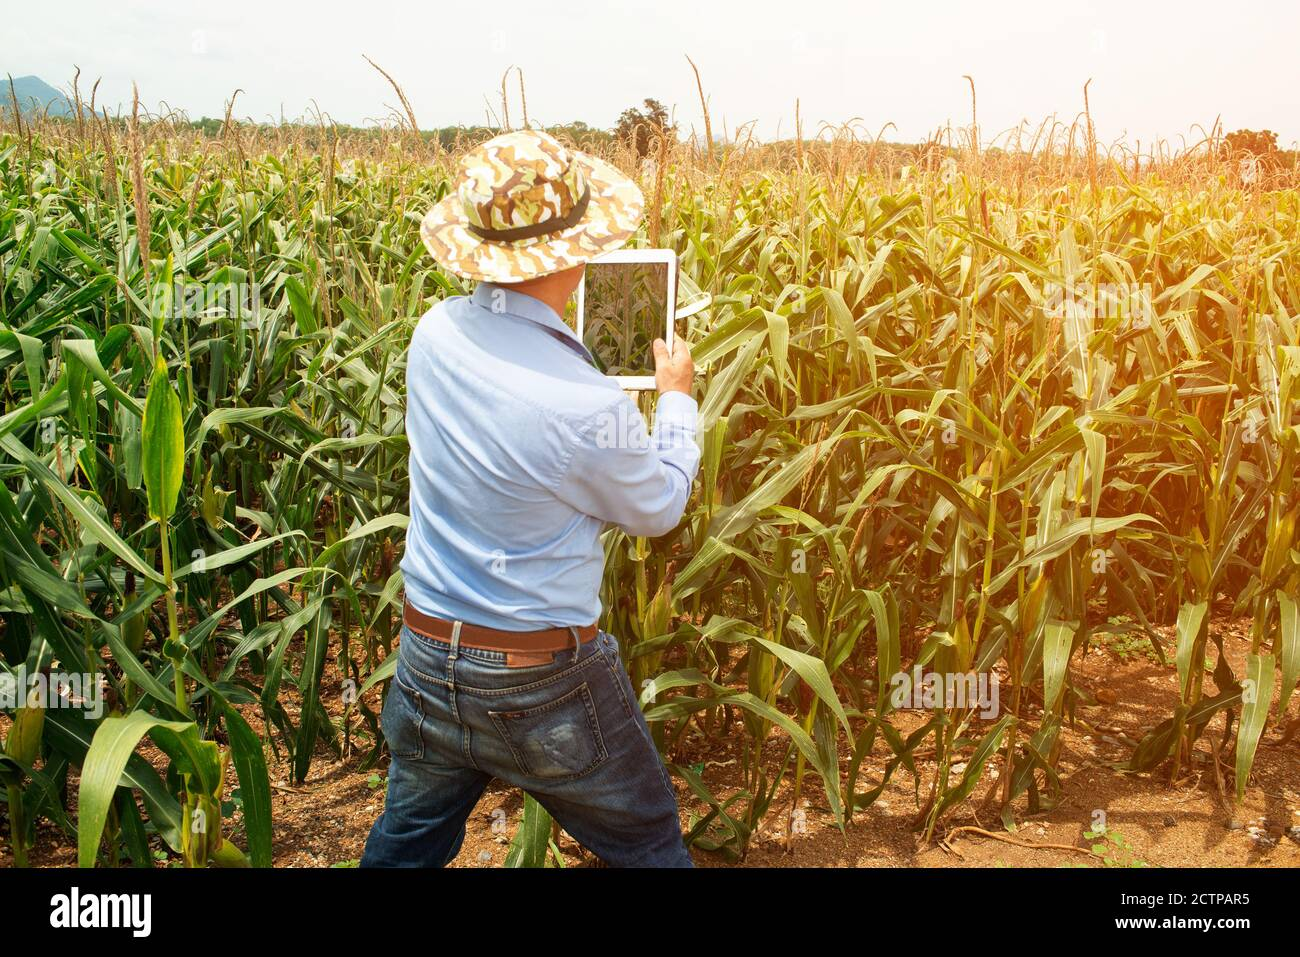 The Asian elder farmers male use a tablet to take pictures of corn fields for further analysis in the lab. Stock Photo